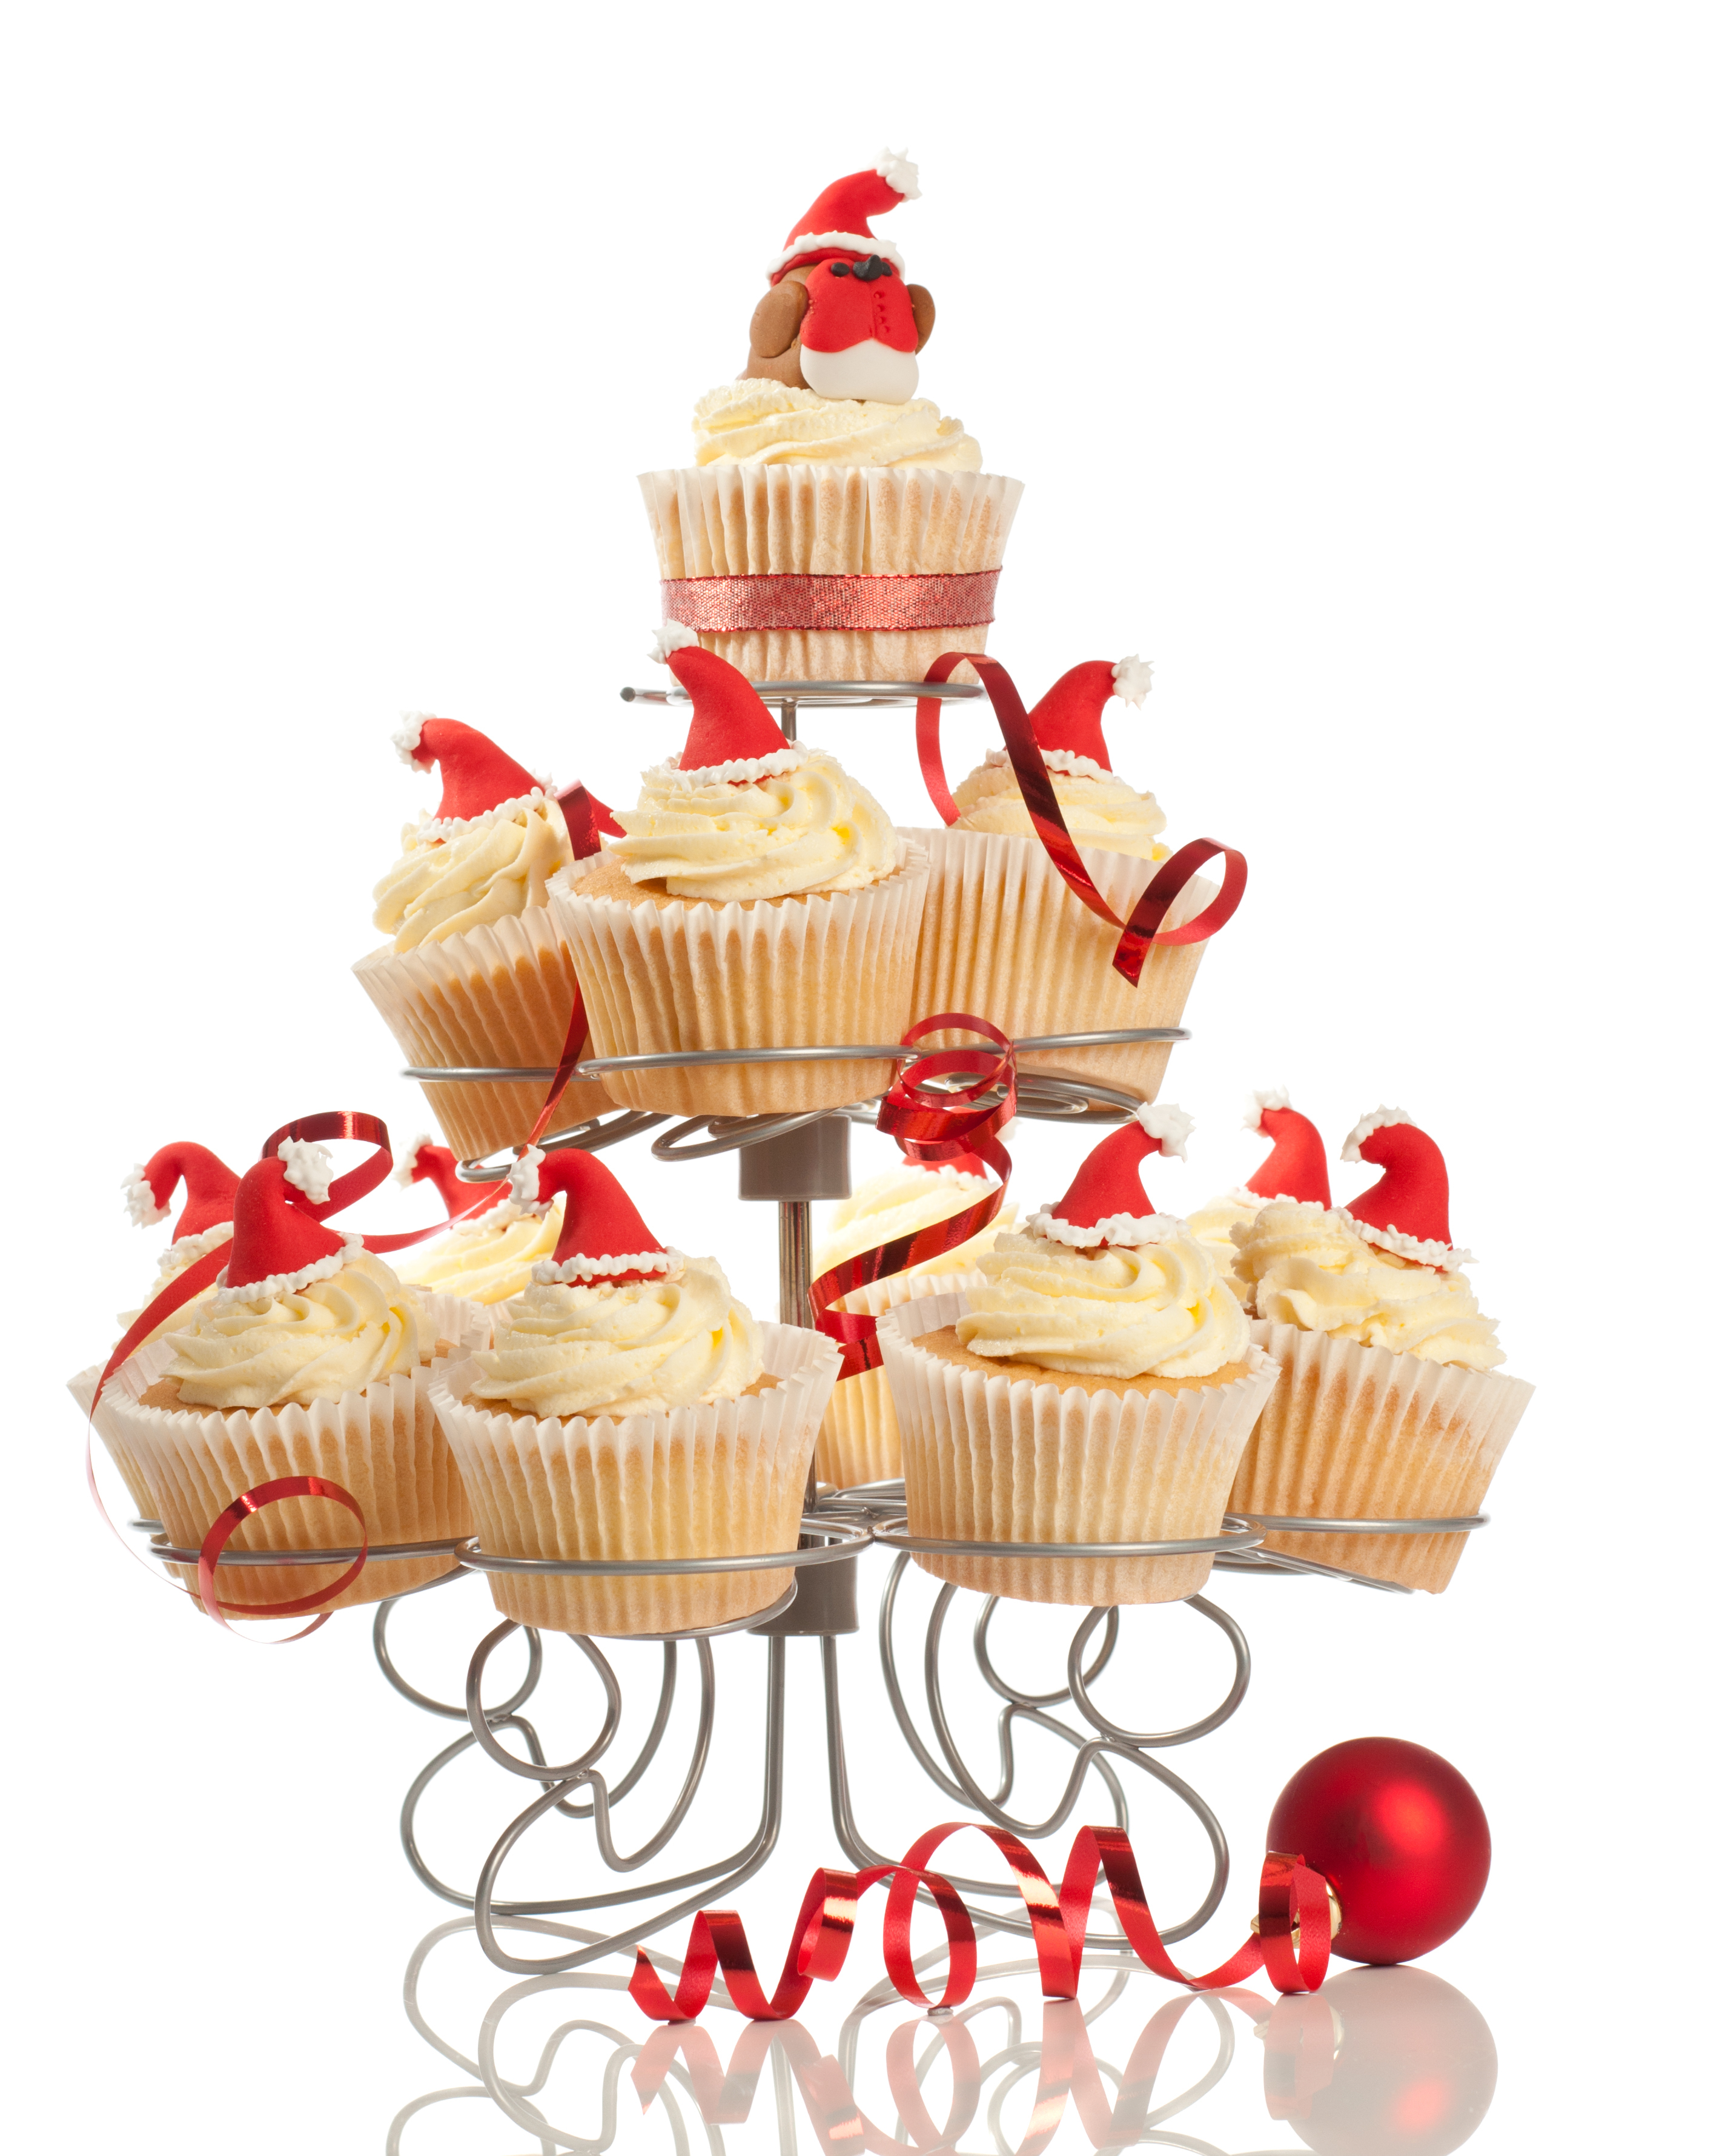 Beautiful Edible Centrepiece for Christmas